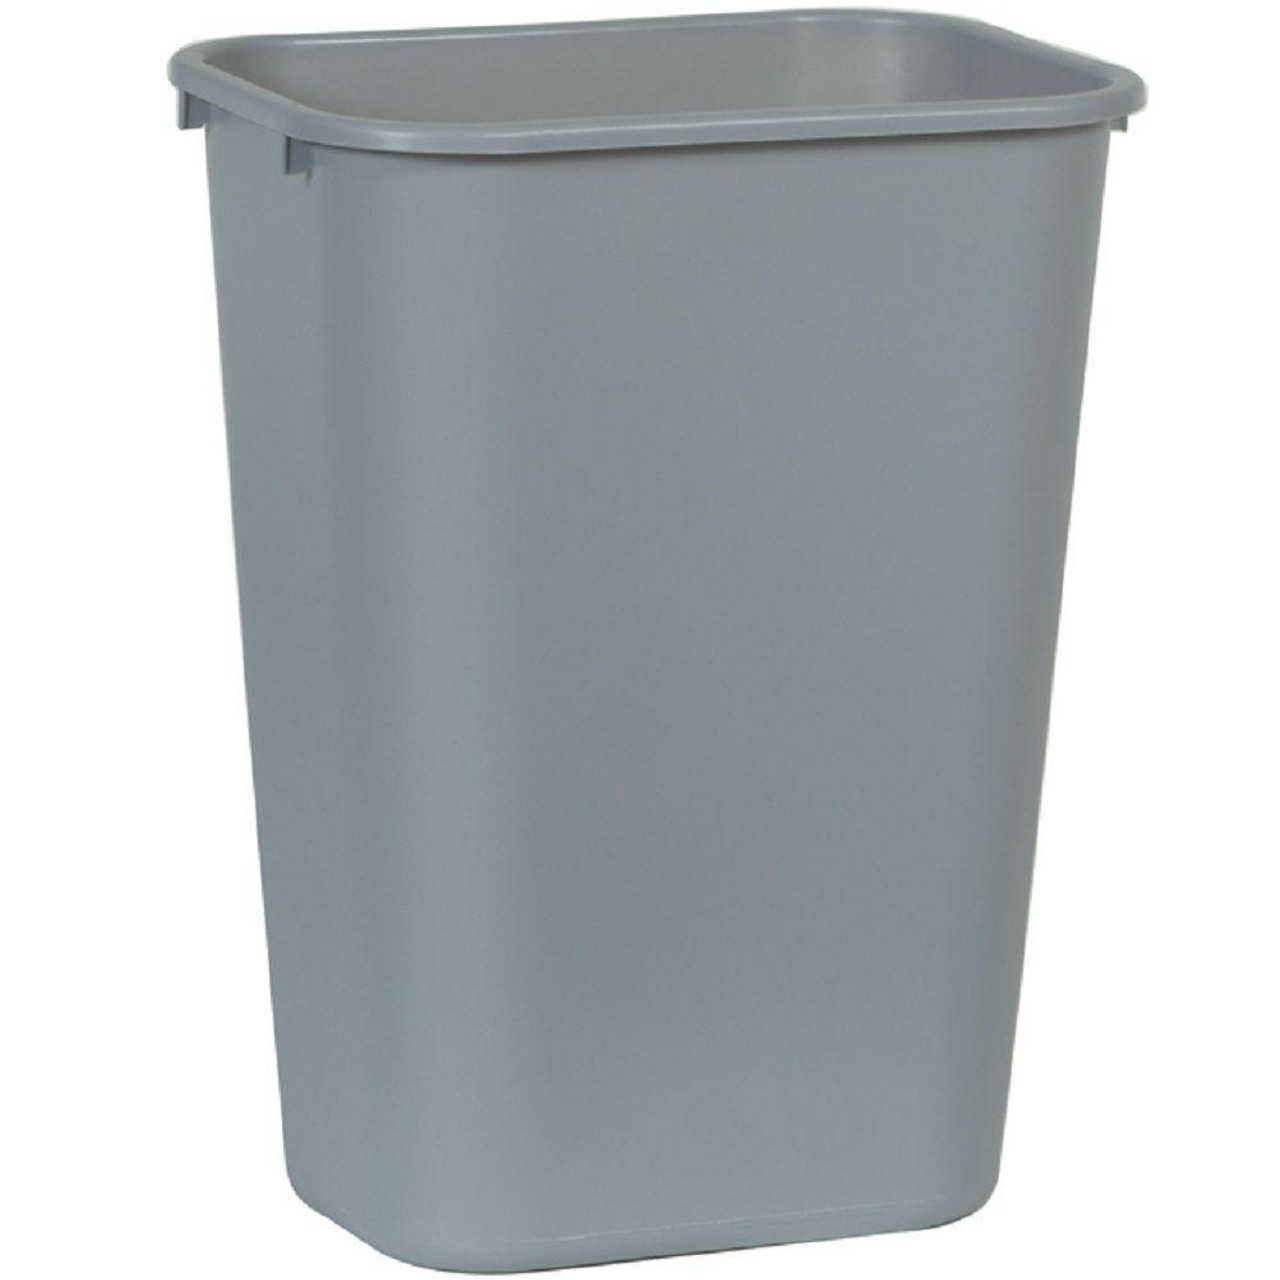 Rubbermaid Rectangular Wastebasket 39 L - Grey - FG295700GRAY